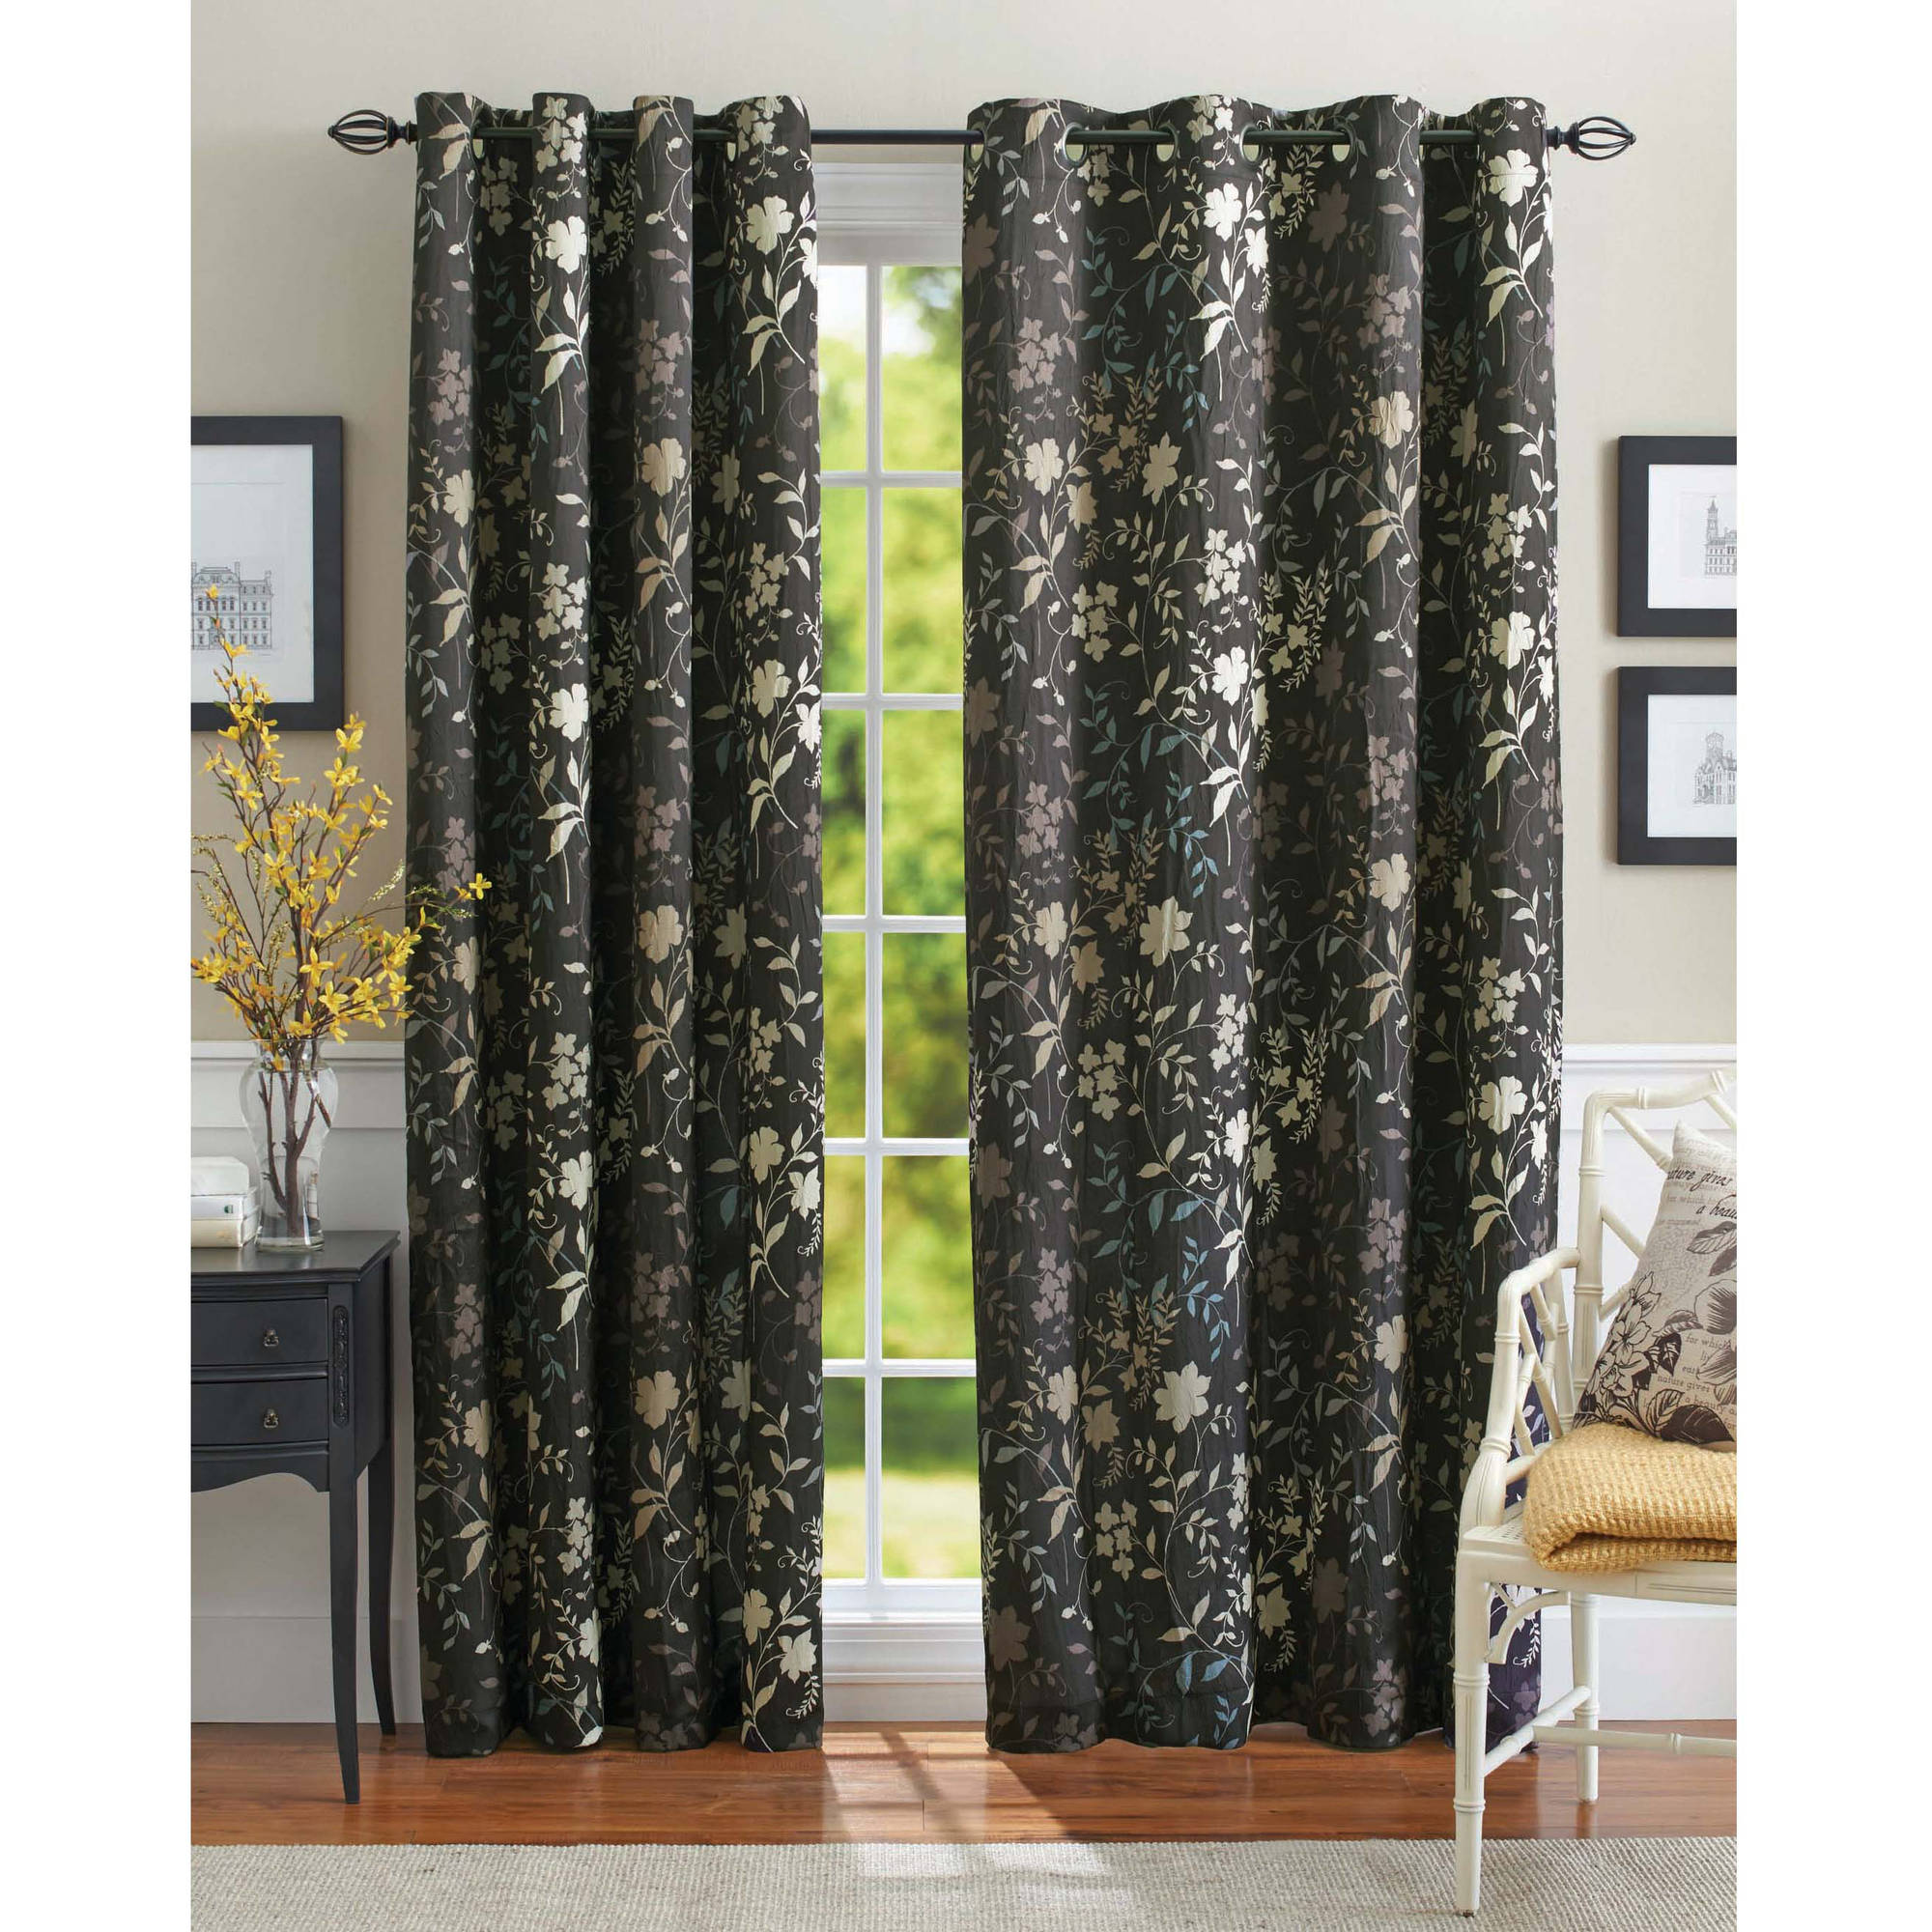 Better Homes and Gardens Calista Print Room Darkening Curtain Panel